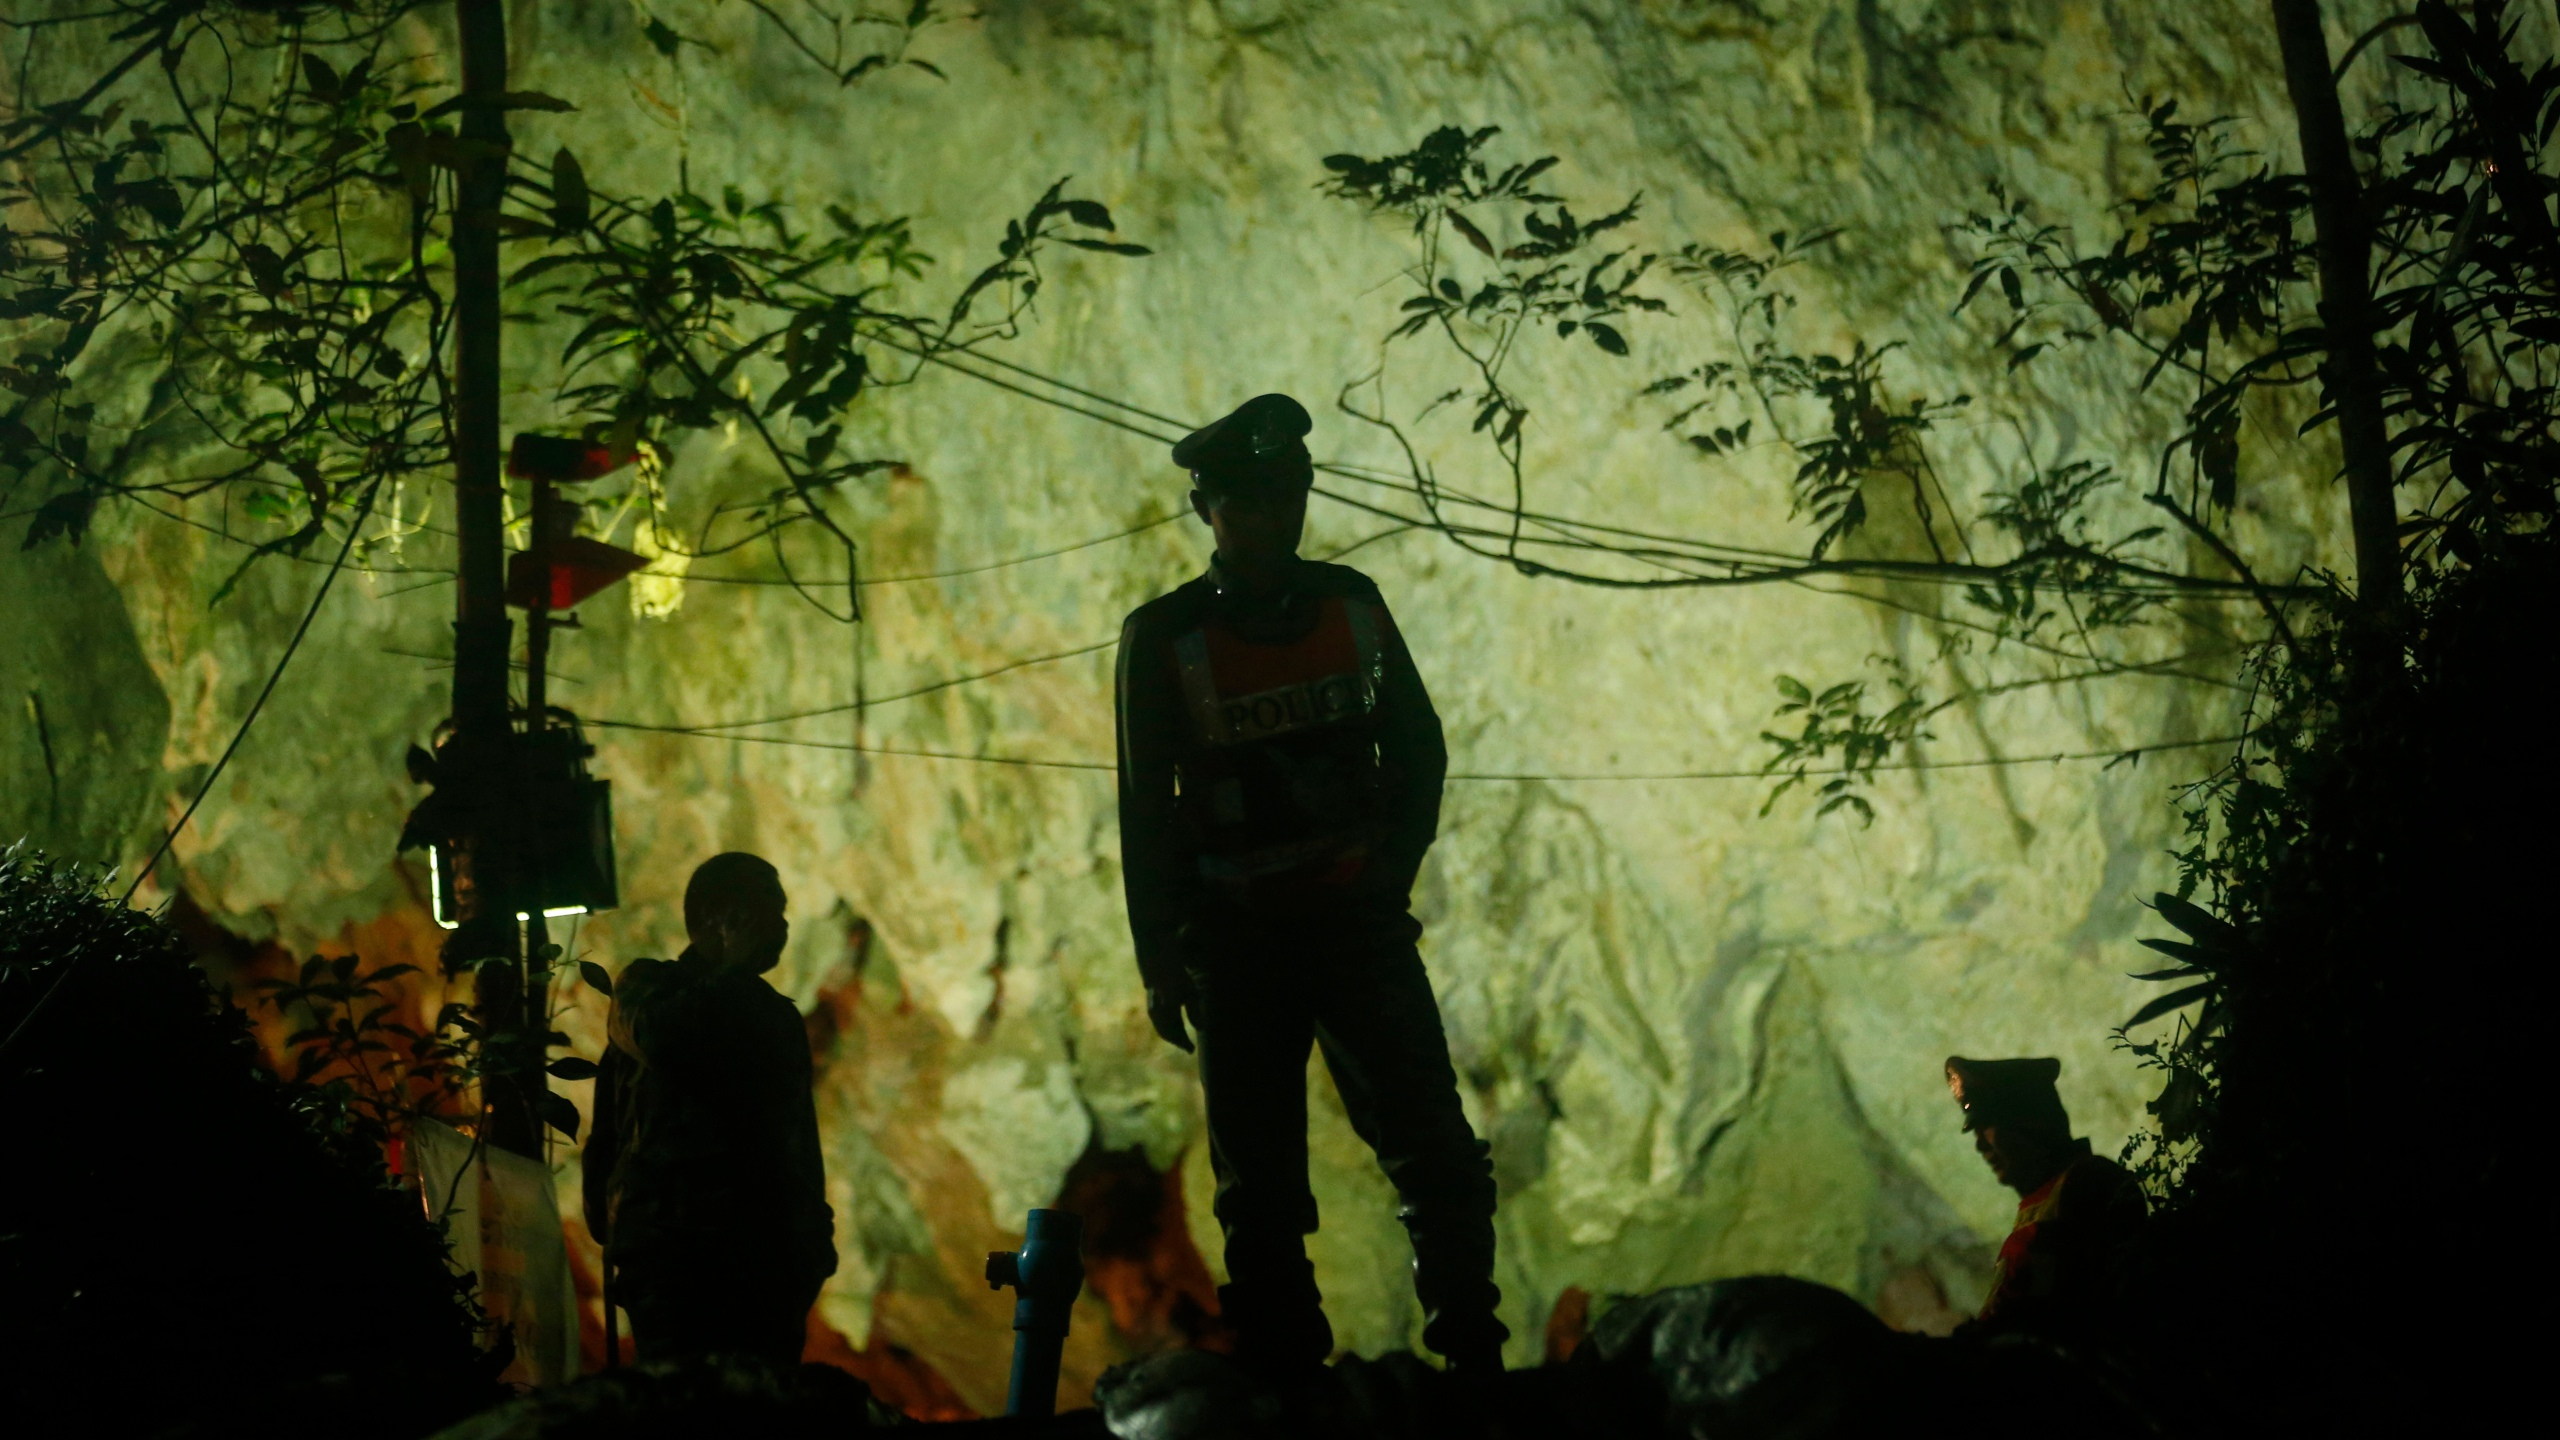 Thailand_Cave_Search_74892-159532.jpg74545156